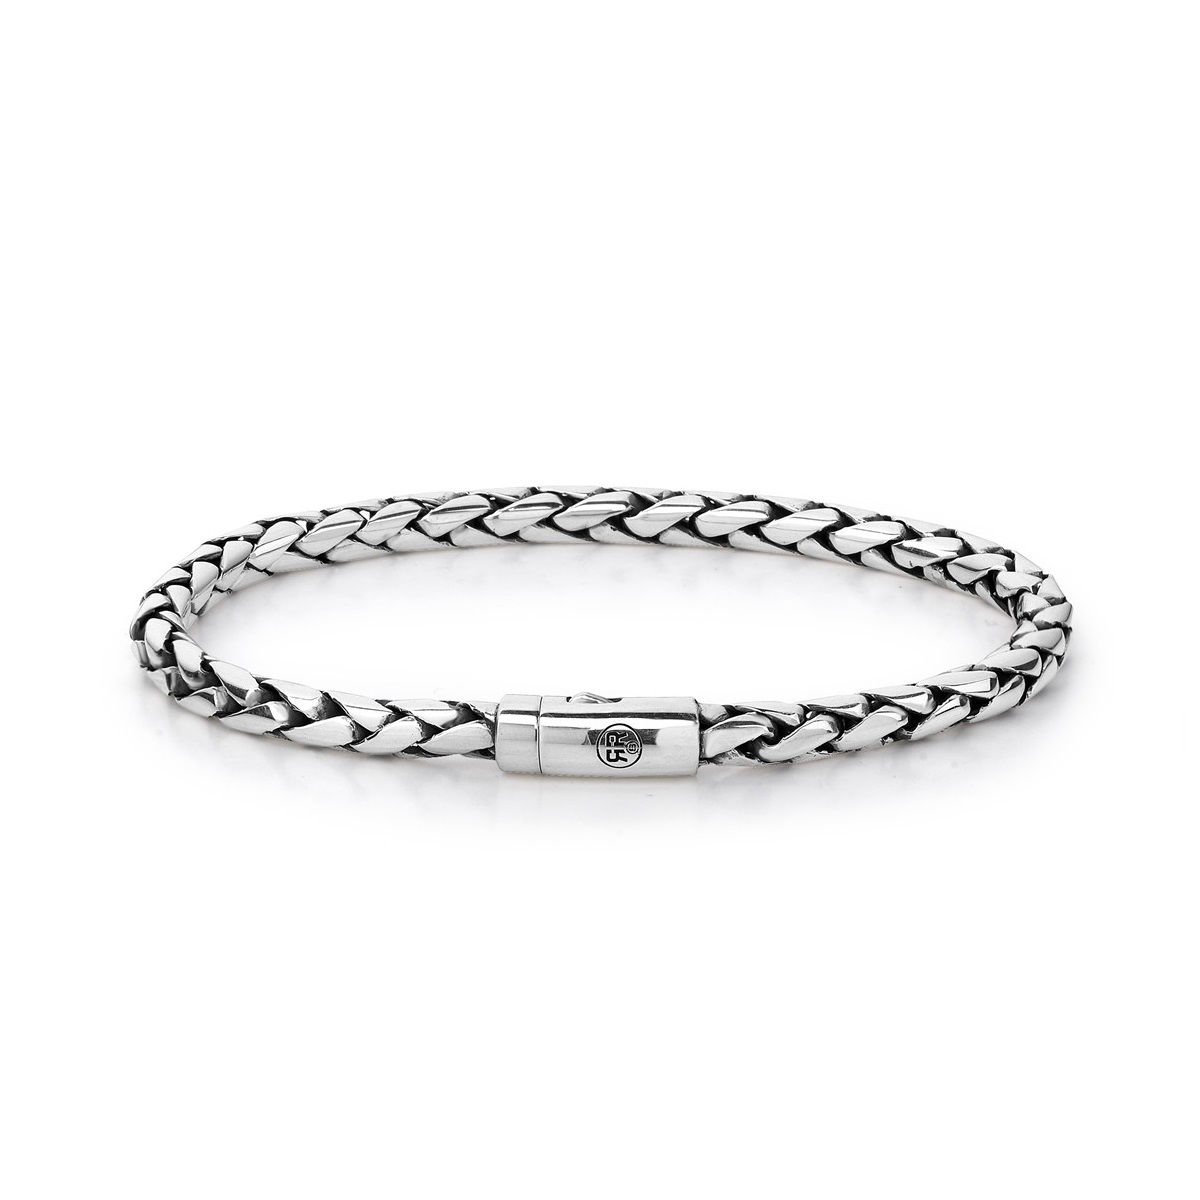 Rebel & Rose Hera Silver Bracelet S